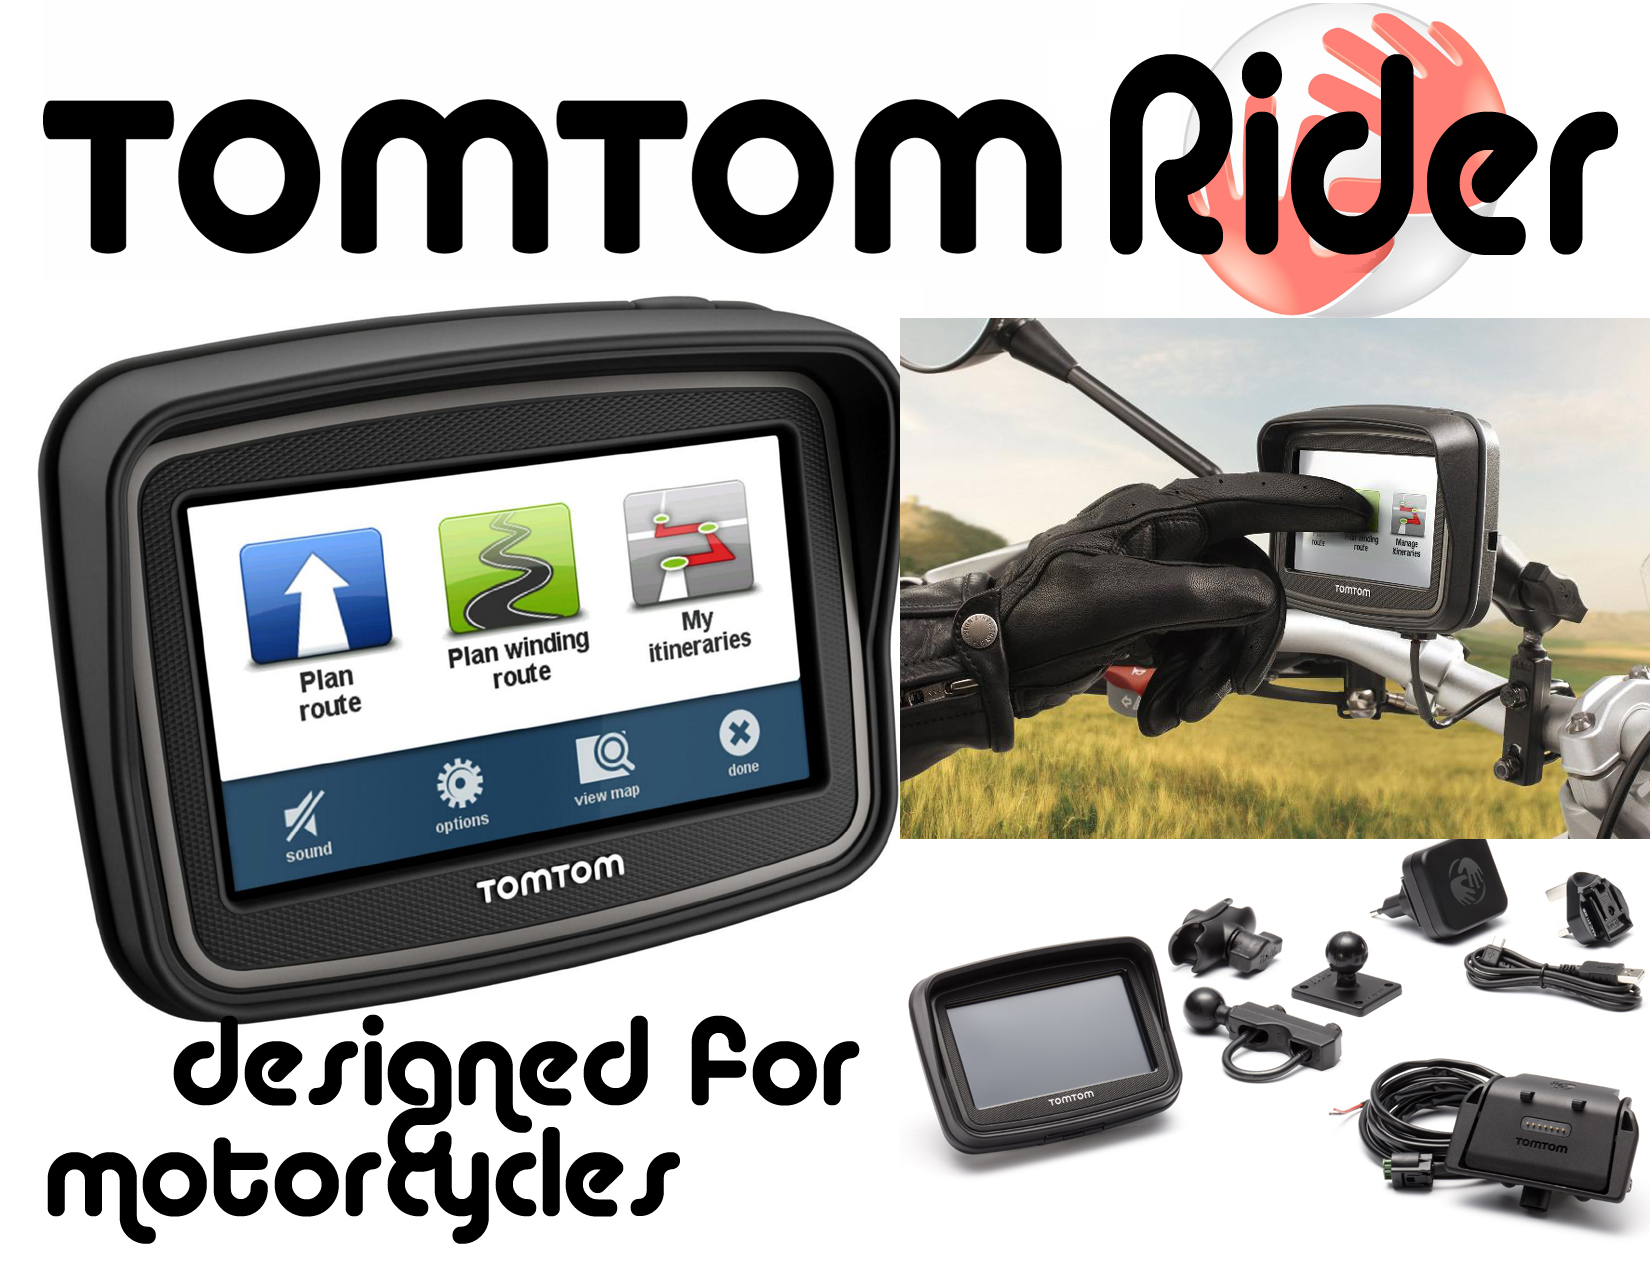 tomtom rider motorcycle gps kit motorcycle product reviews news events tech. Black Bedroom Furniture Sets. Home Design Ideas